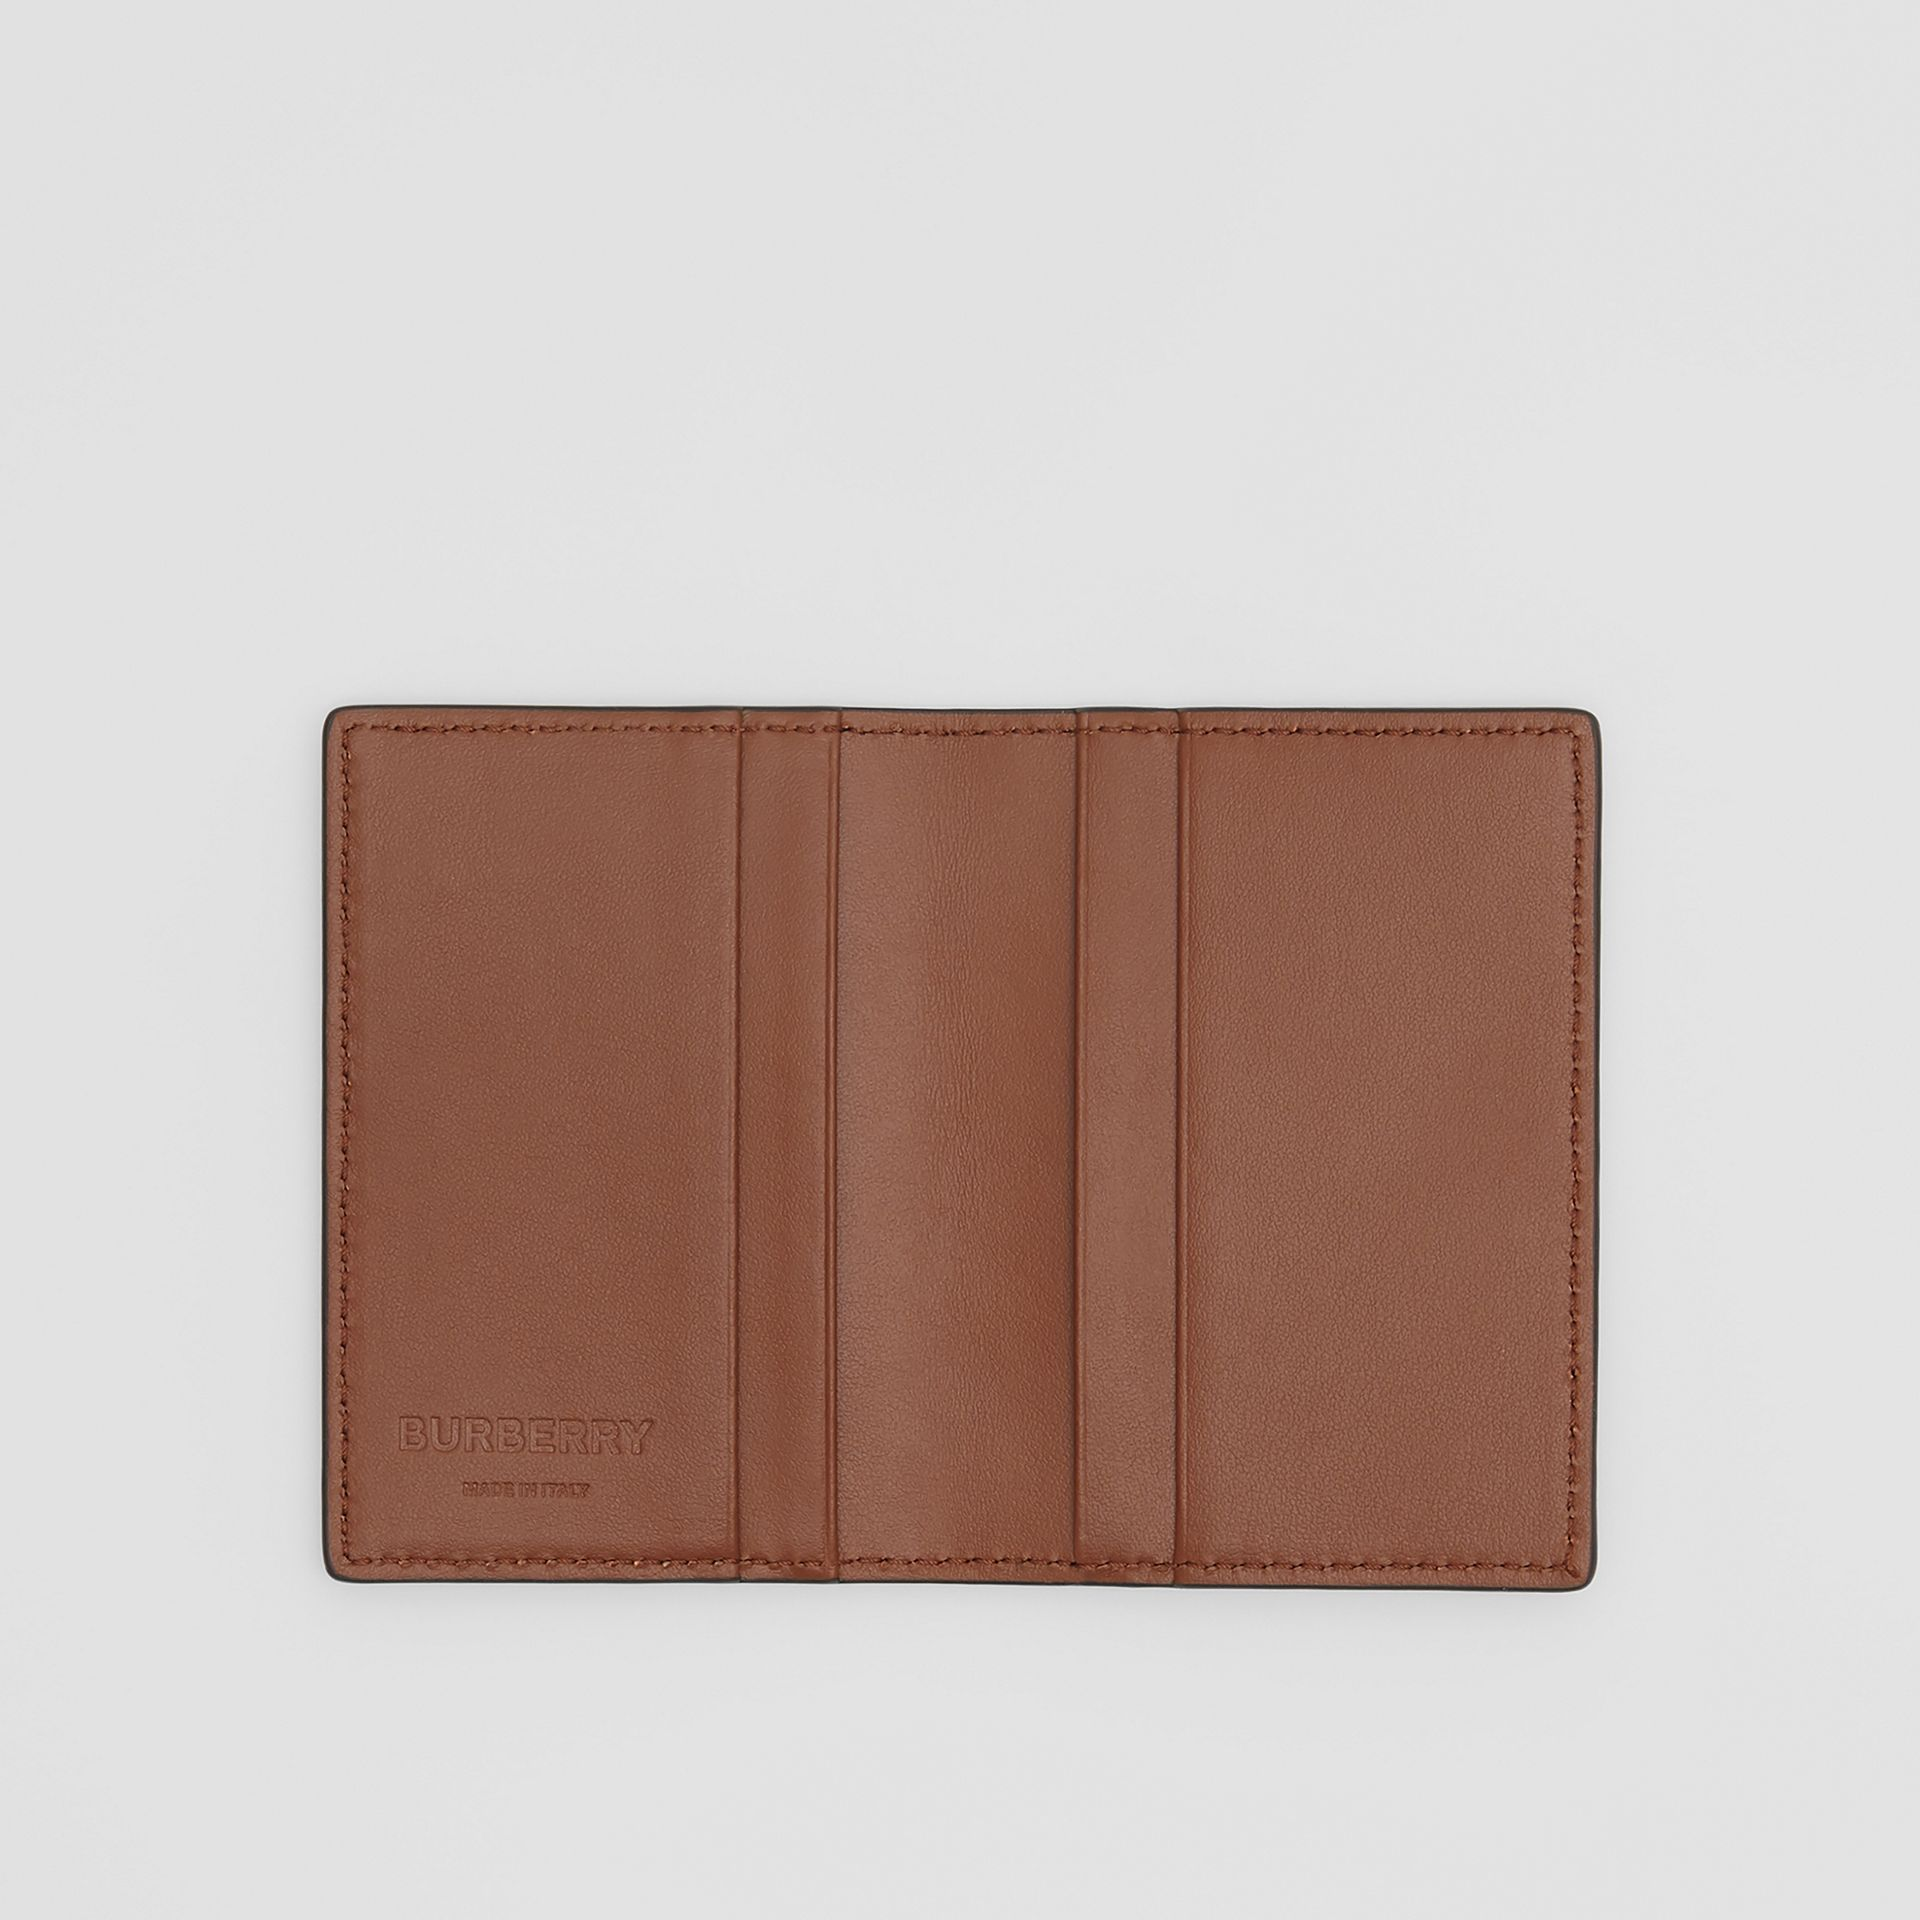 Monogram Leather Bifold Card Case in Dark Tan - Men | Burberry United Kingdom - gallery image 2